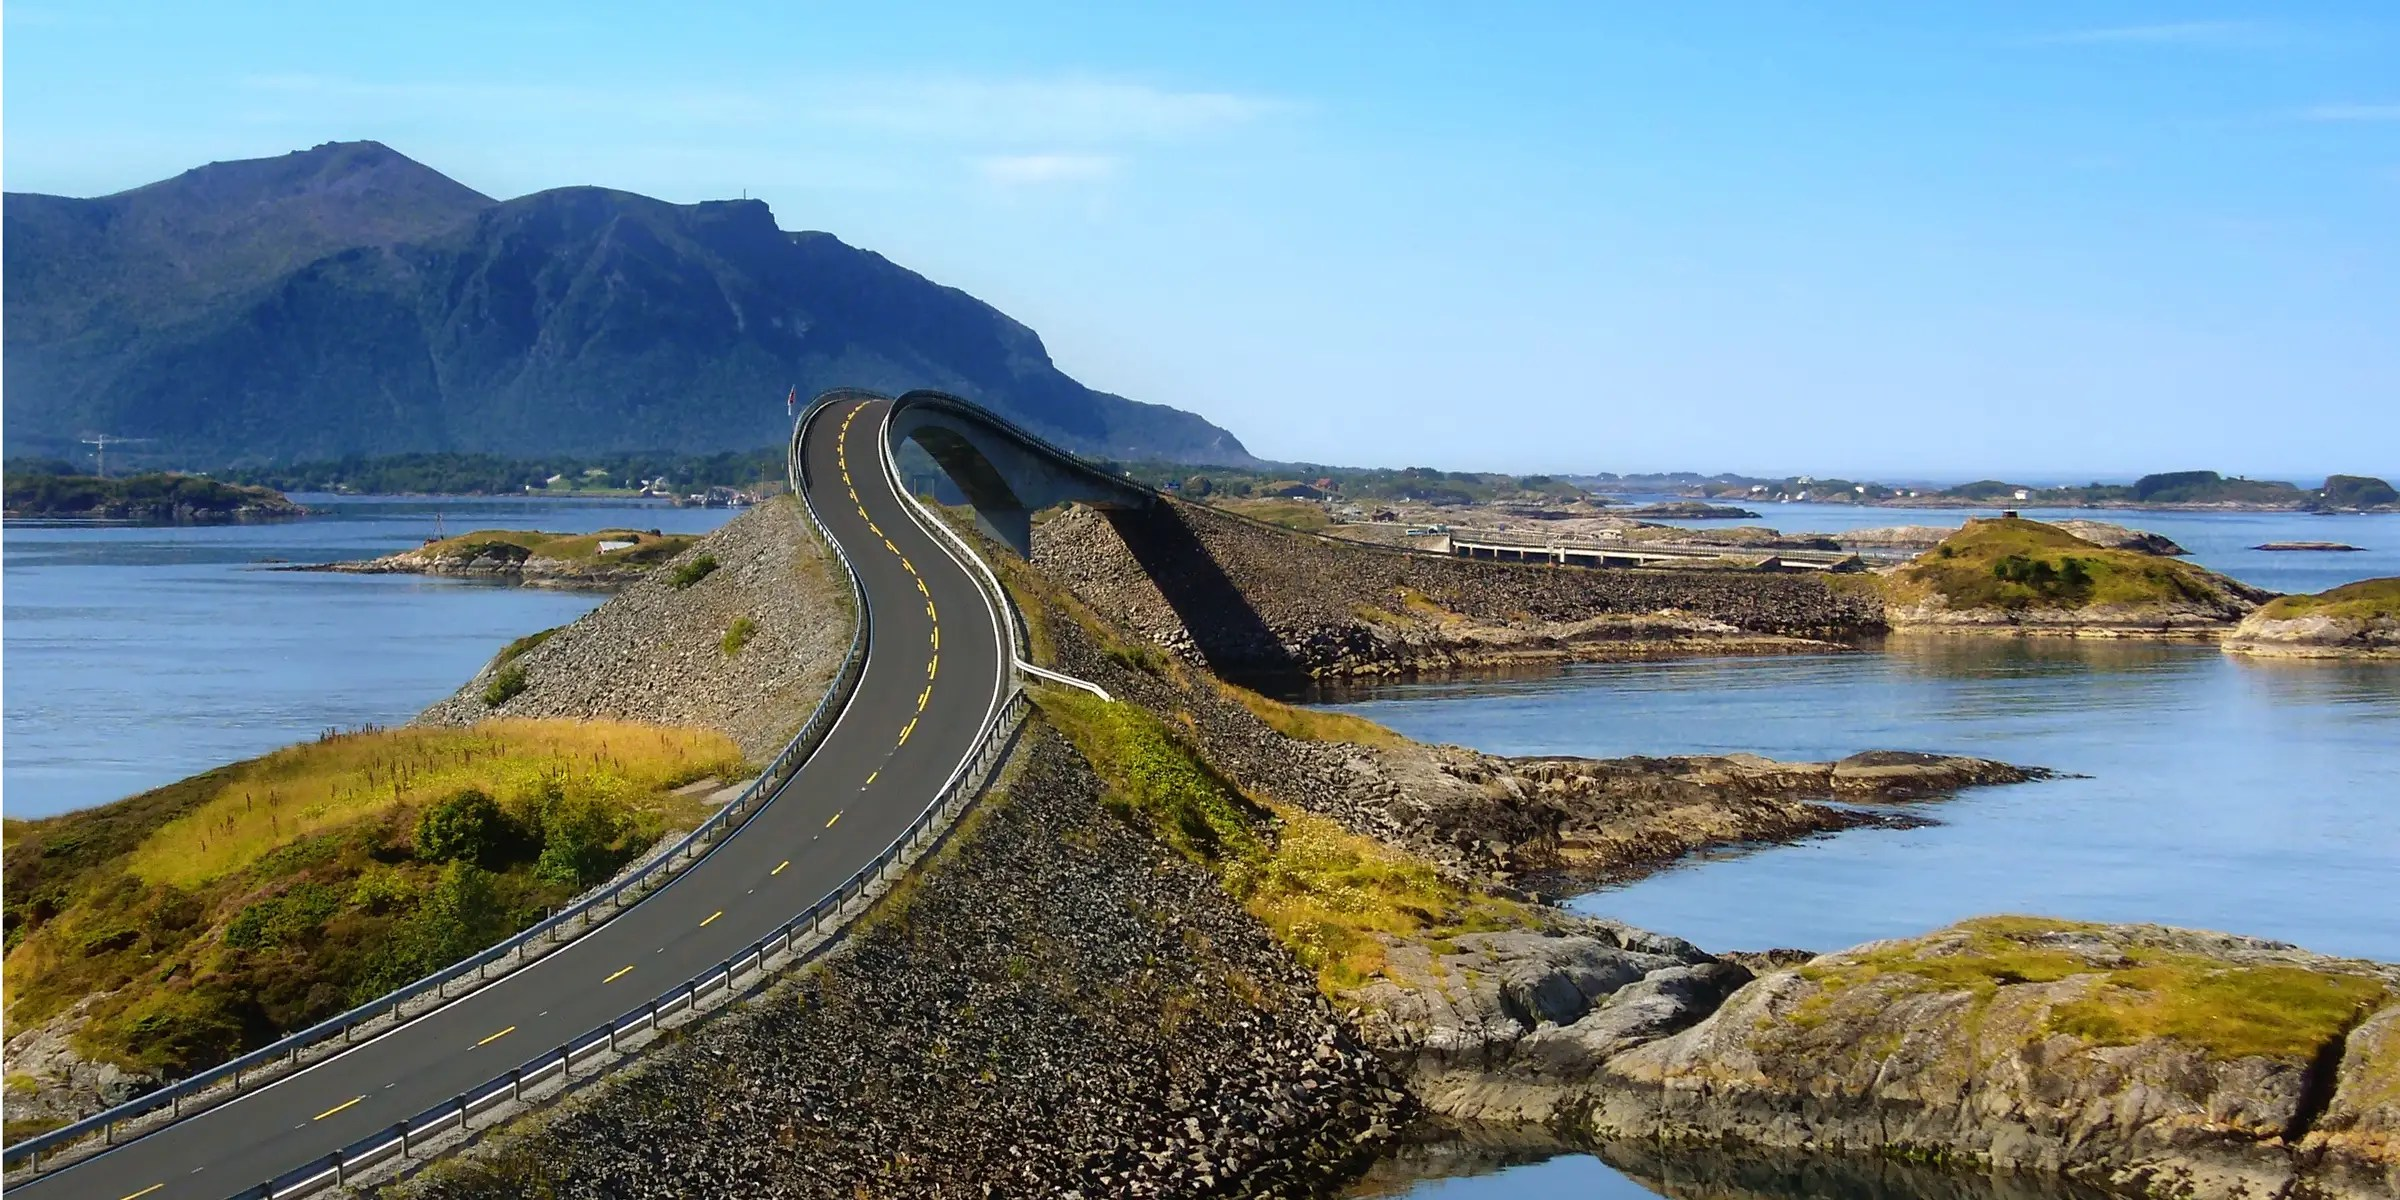 The Atlantic Road in Norway stretches across seven bridges and offers a beautiful view of the Atlantic Ocean. If you drive in calmer weather, you might even see whales and seals.